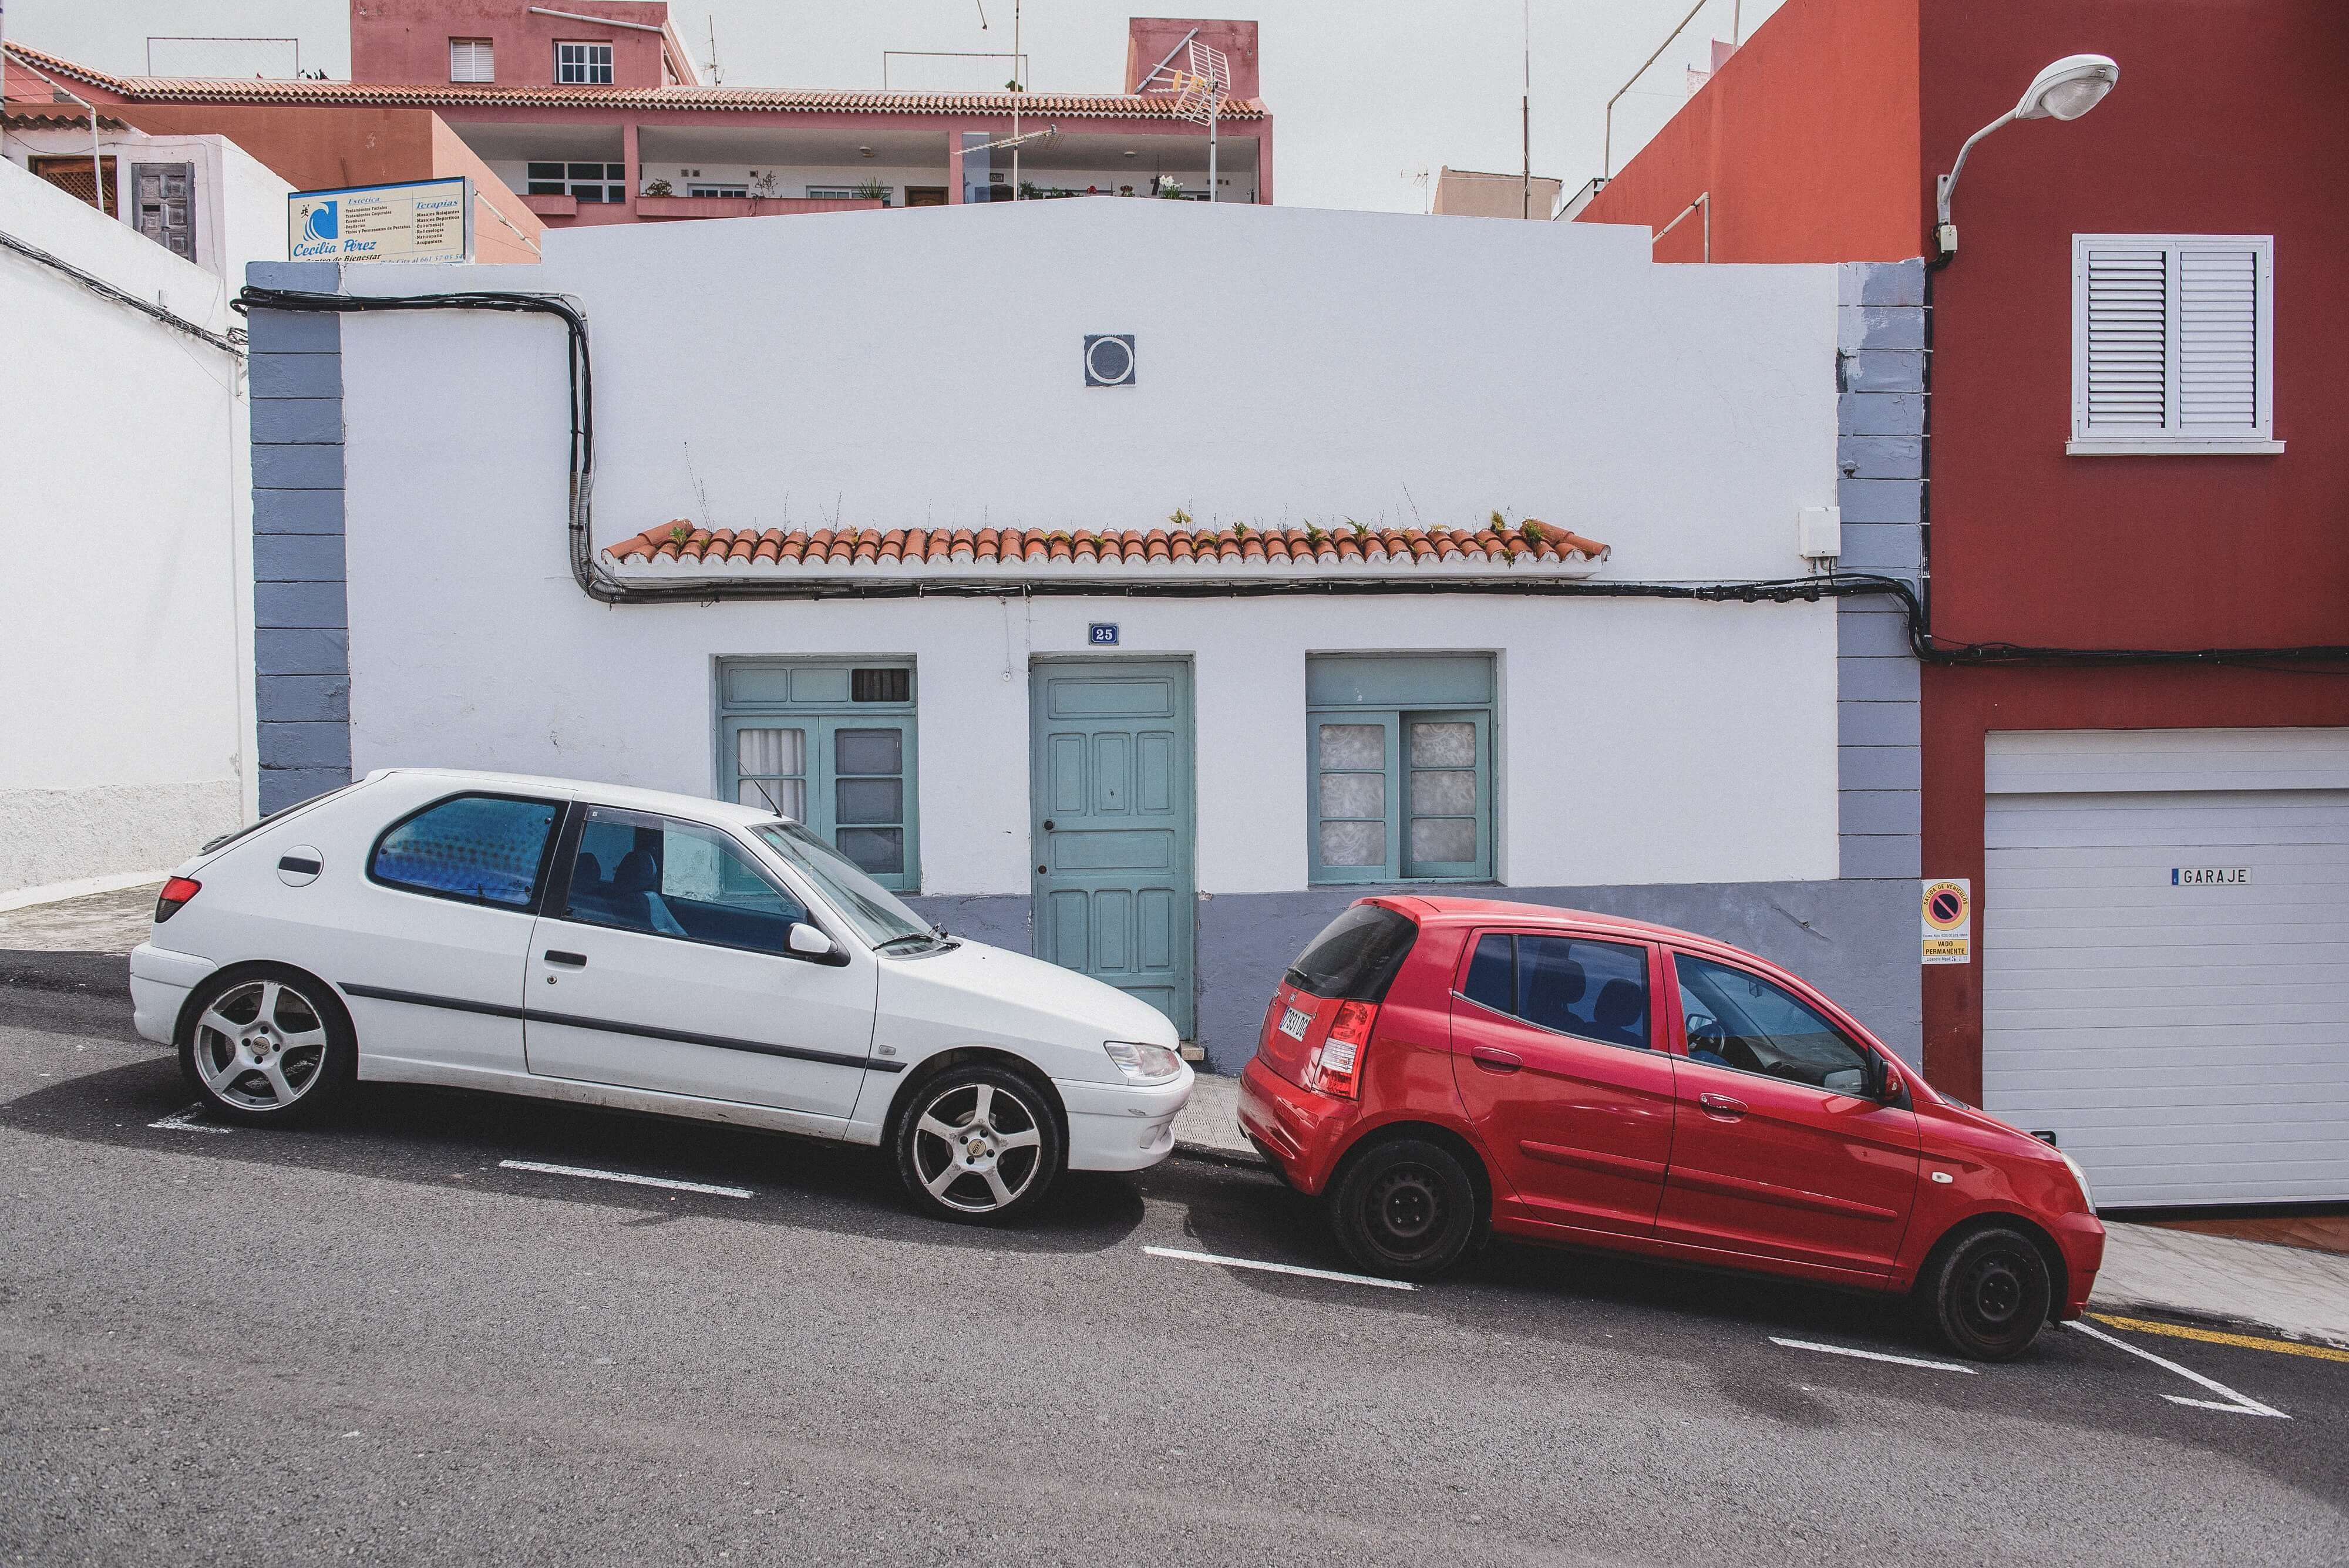 street parking for cars in spain